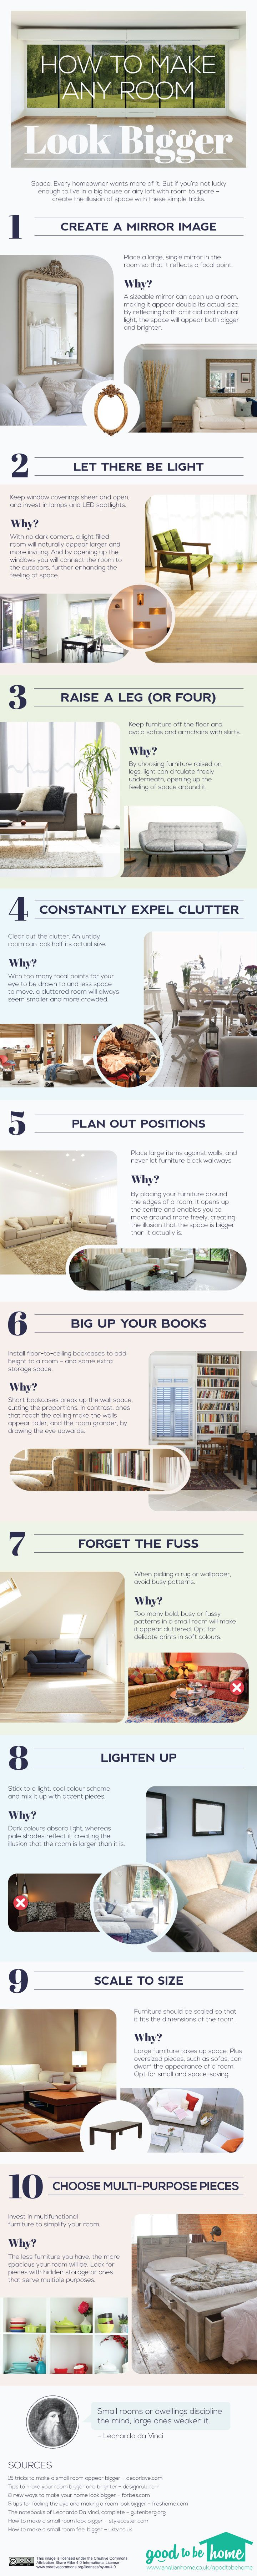 INFOGRAPHIC: How To Make A Small Space Look Bigger